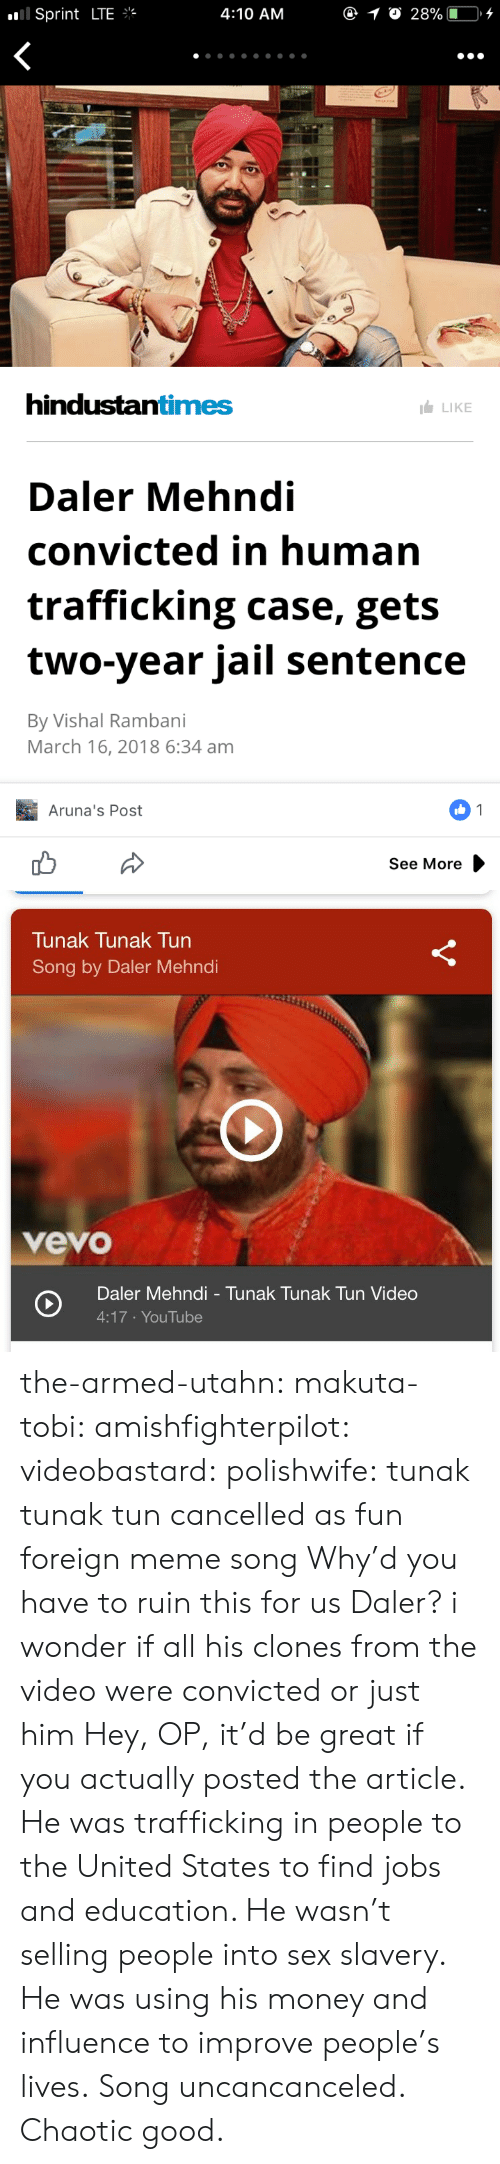 Jail, Meme, and Money: .'Il Sprint LTE  4:10 ANM  hindustantimes  LIKE  Daler Mehndi  convicted in human  trafficking case, gets  two-year jail sentence  By Vishal Rambani  March 16, 2018 6:34 am  Aruna's Post  See More   Tunak Tunak Tun  Song by Daler Mehndi  vevo  Daler Mehndi - Tunak Tunak Tun Video  4:17 YouTube the-armed-utahn: makuta-tobi:  amishfighterpilot:  videobastard:  polishwife: tunak tunak tun cancelled as fun foreign meme song Why'd you have to ruin this for us Daler?  i wonder if all his clones from the video were convicted or just him   Hey, OP, it'd be great if you actually posted the article. He was trafficking in people to the United States to find jobs and education. He wasn't selling people into sex slavery. He was using his money and influence to improve people's lives. Song uncancanceled.   Chaotic good.